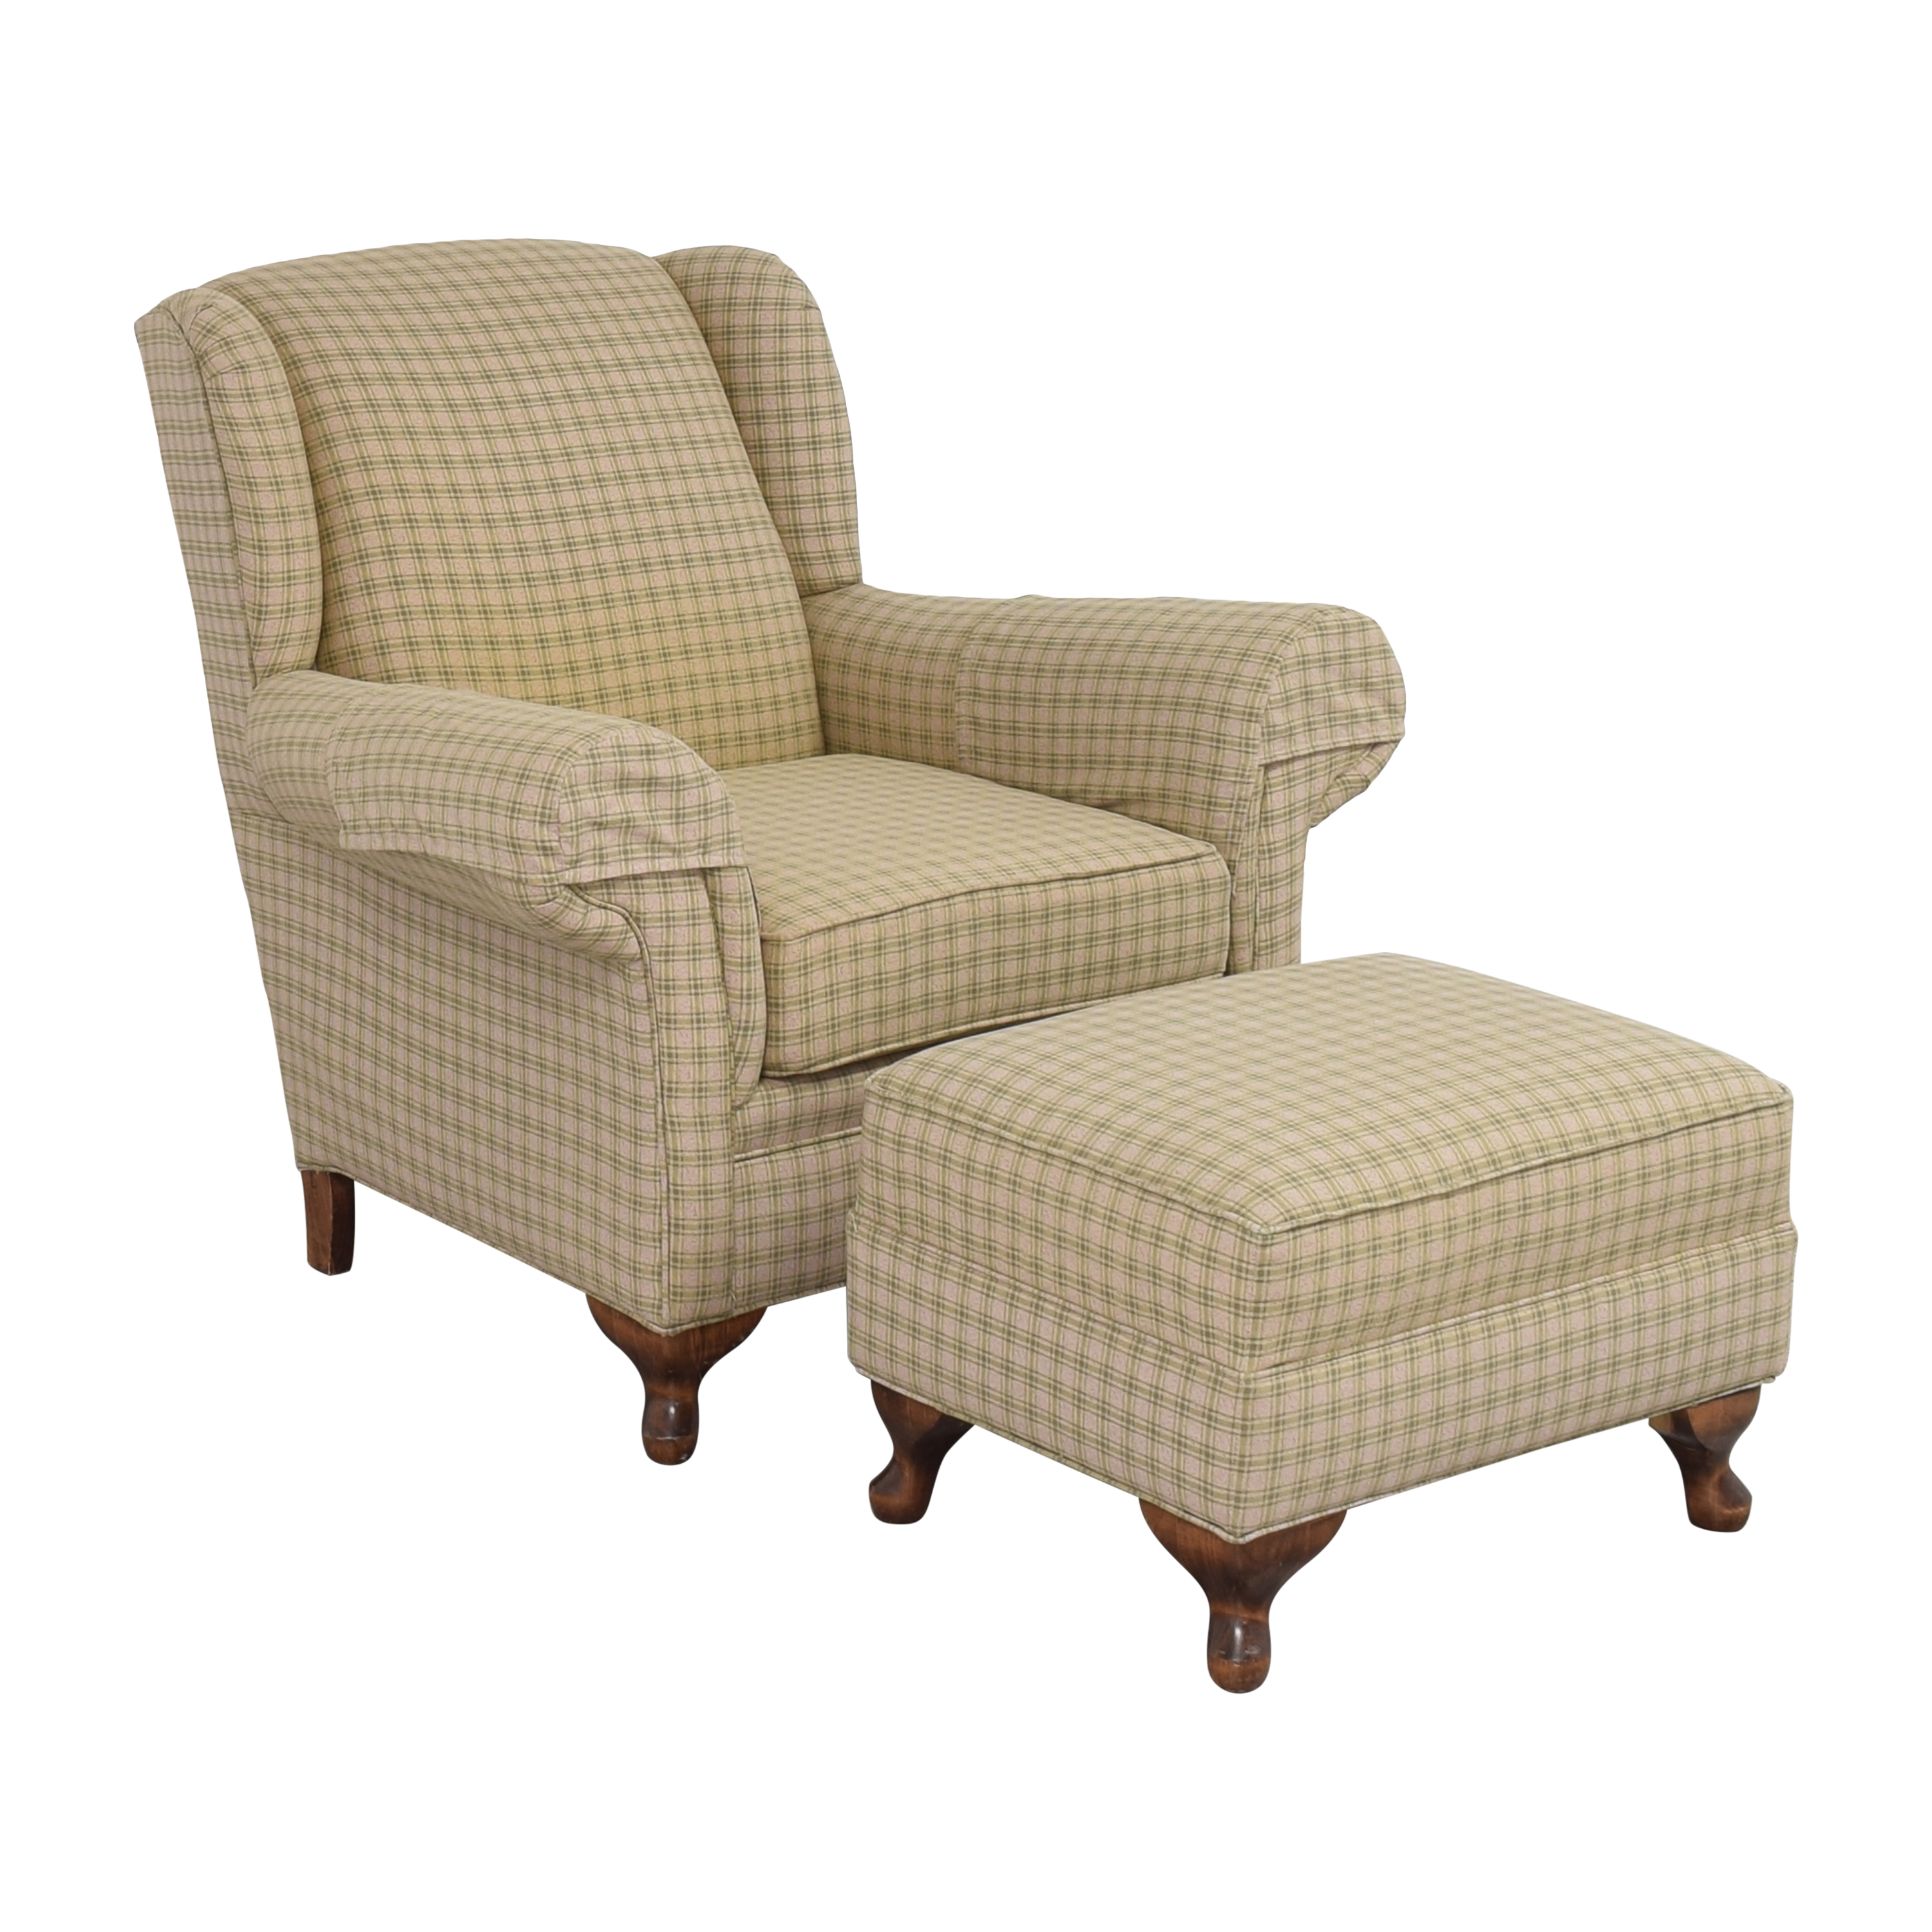 Roll Arm Chair with Ottoman / Chairs